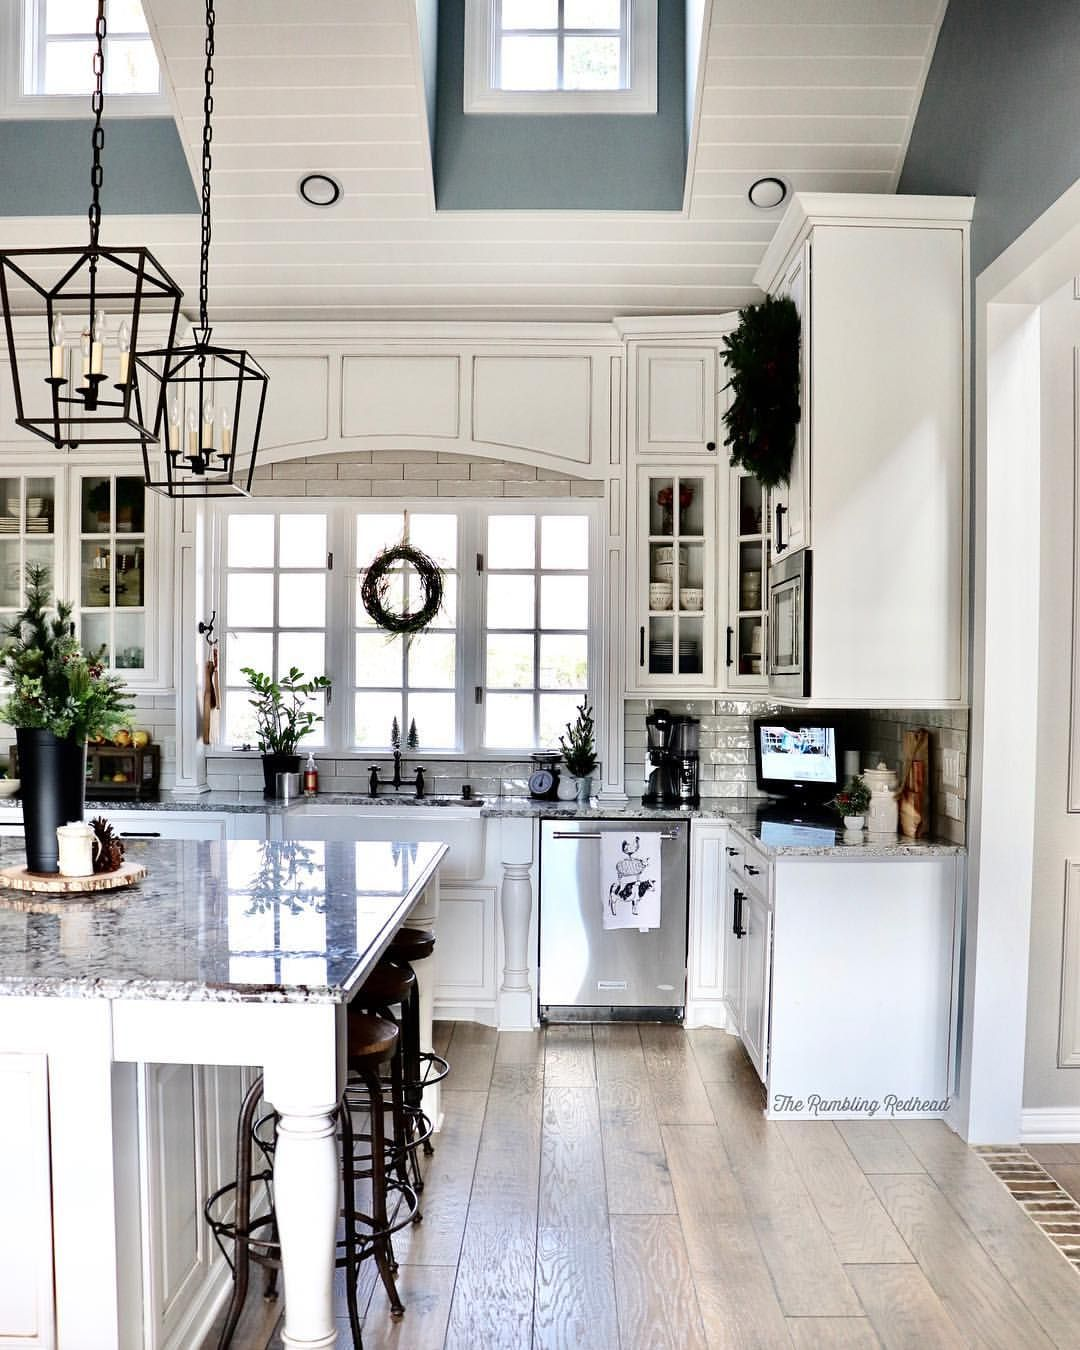 Pin de Calista Adams en Dream home | Pinterest | Cocinas, Casas y ...